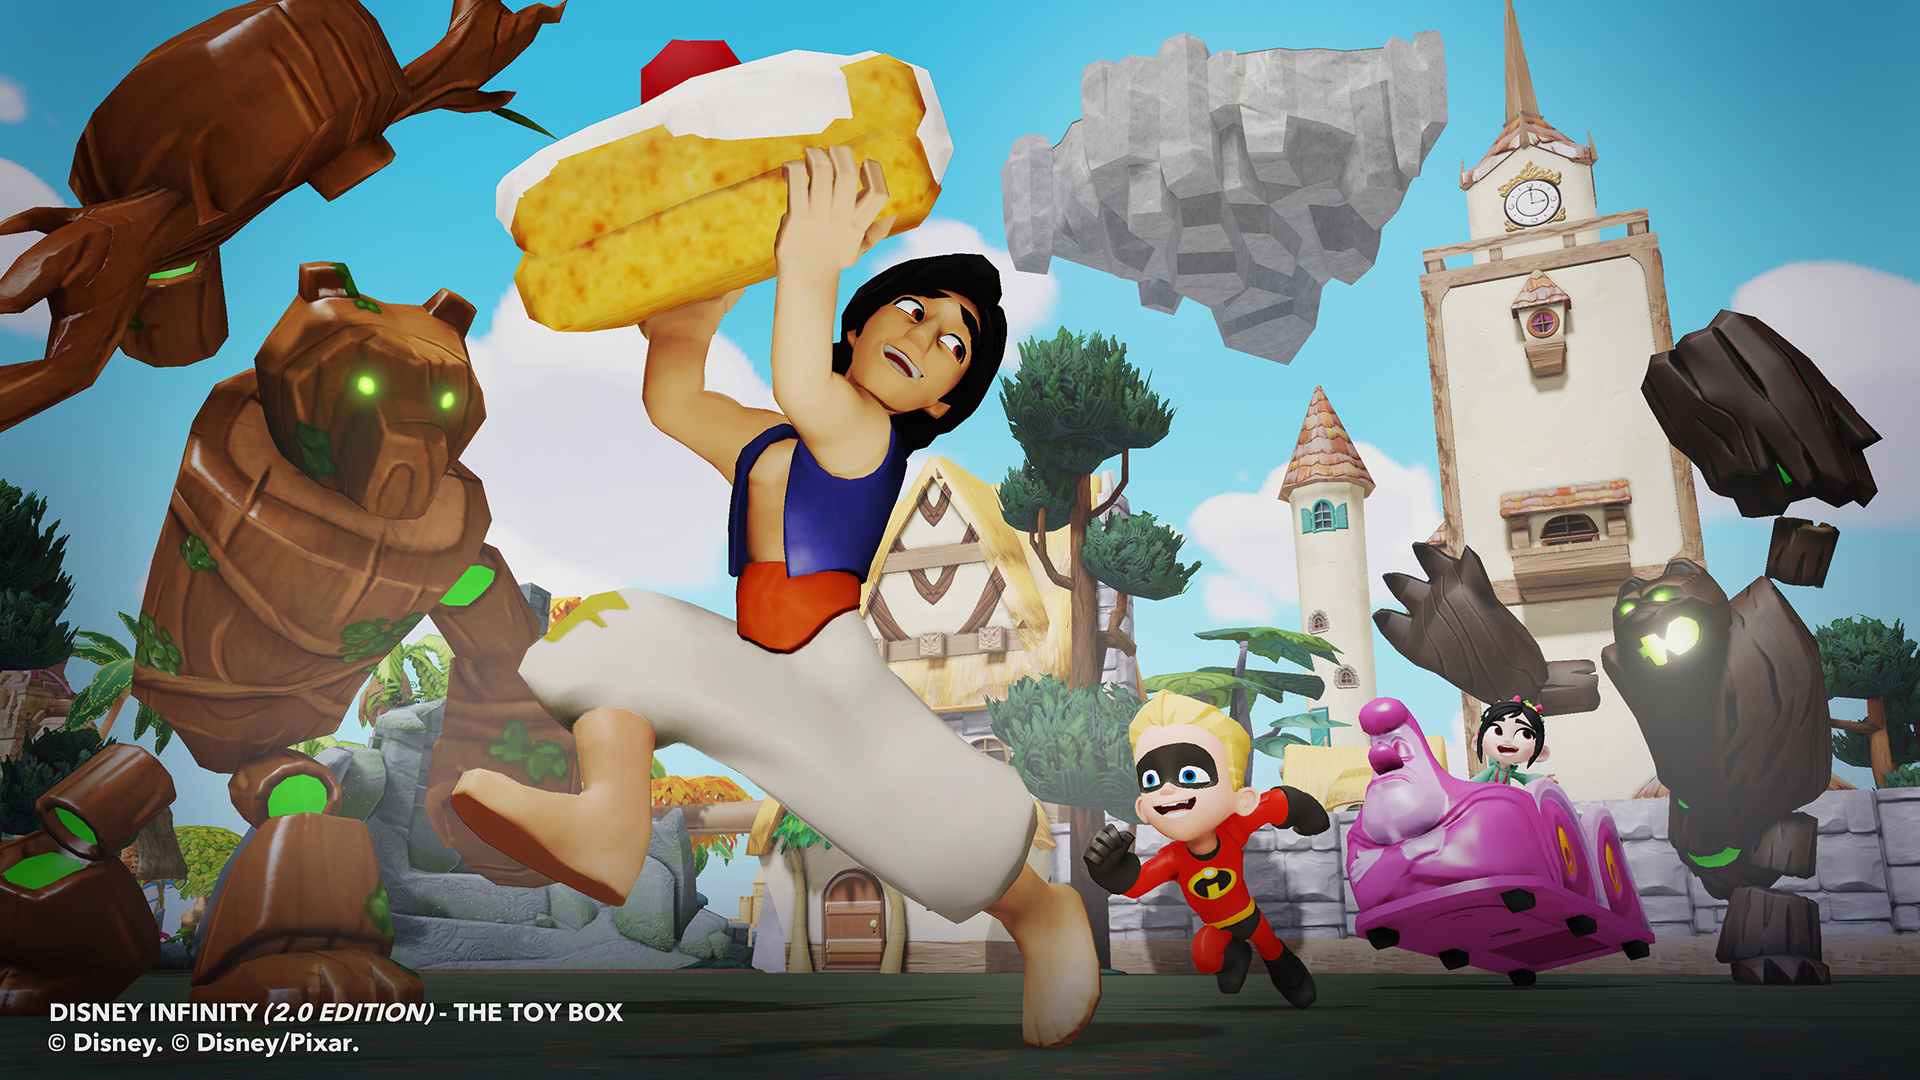 Aladdin-jasmine-disney-infinity-2-edition-screenshot-1